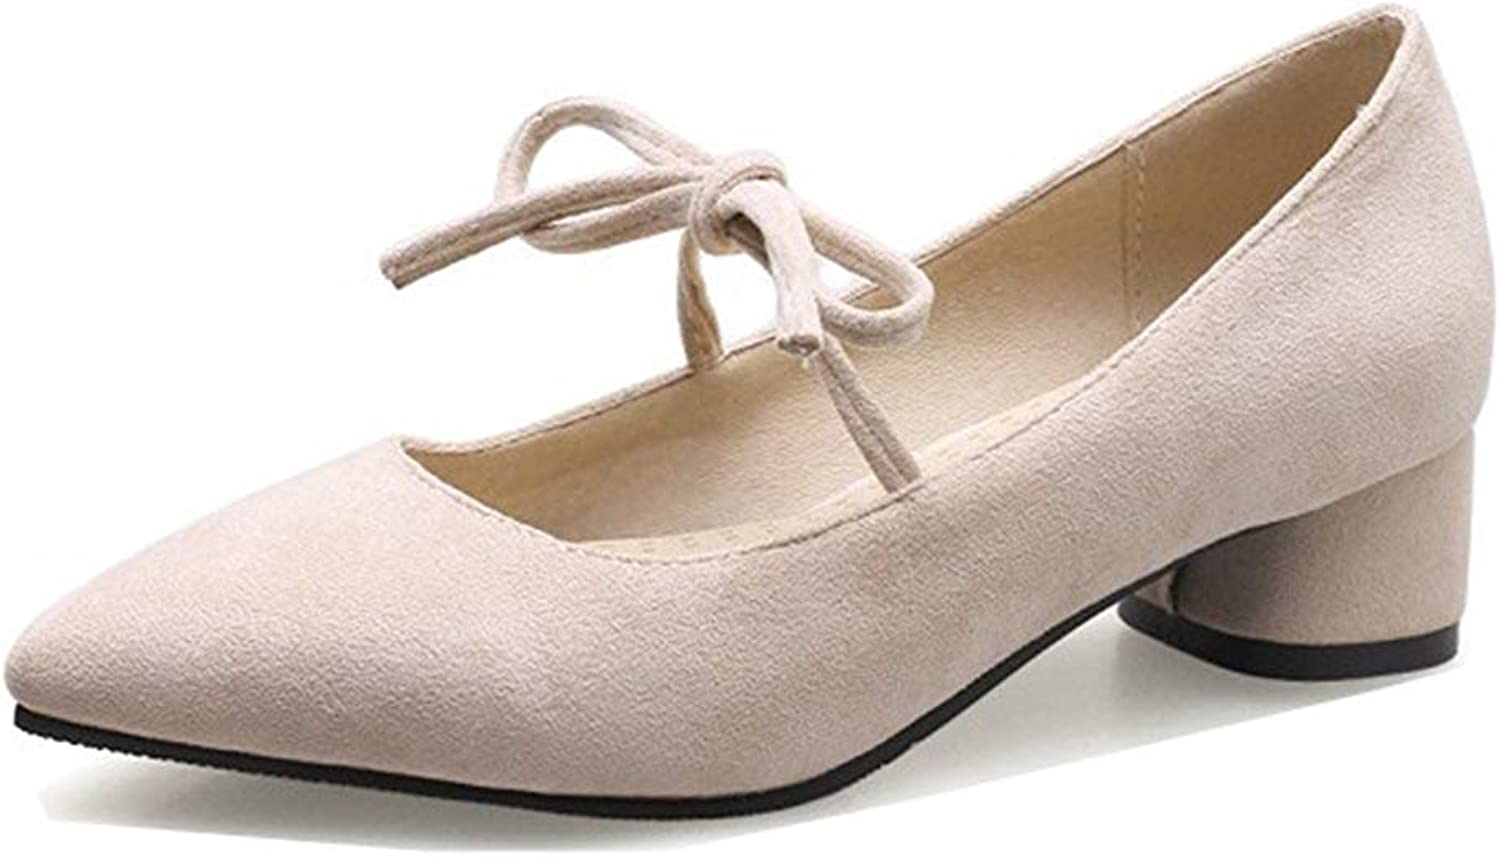 Unm Women's Stylish Low Cut Pointed Toe Dressy Low Chunky Heel Lace Up Pumps shoes